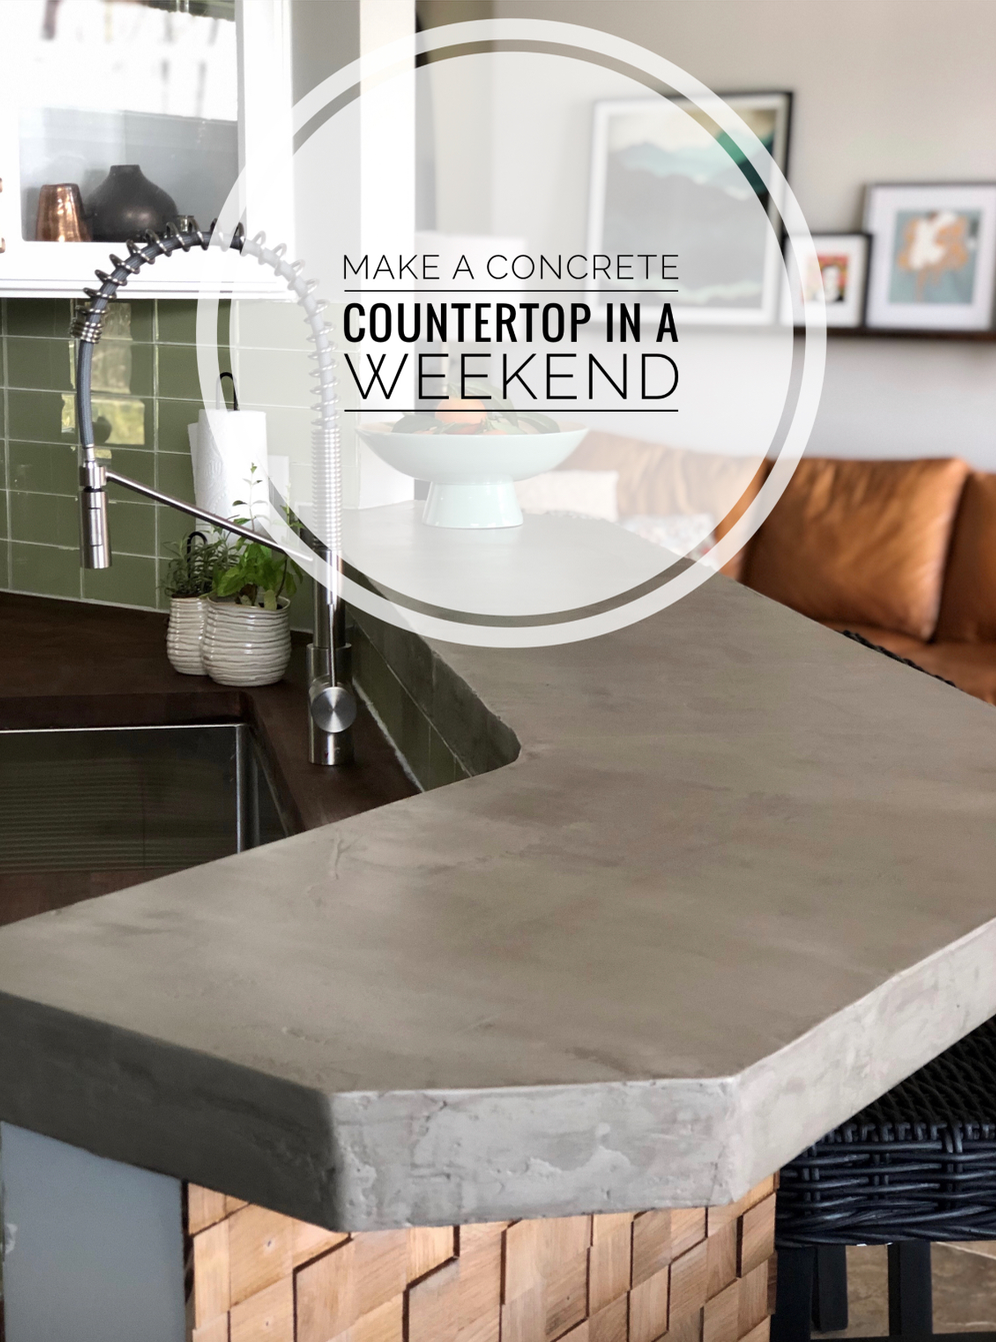 How to make a concrete counter top in a weekend.